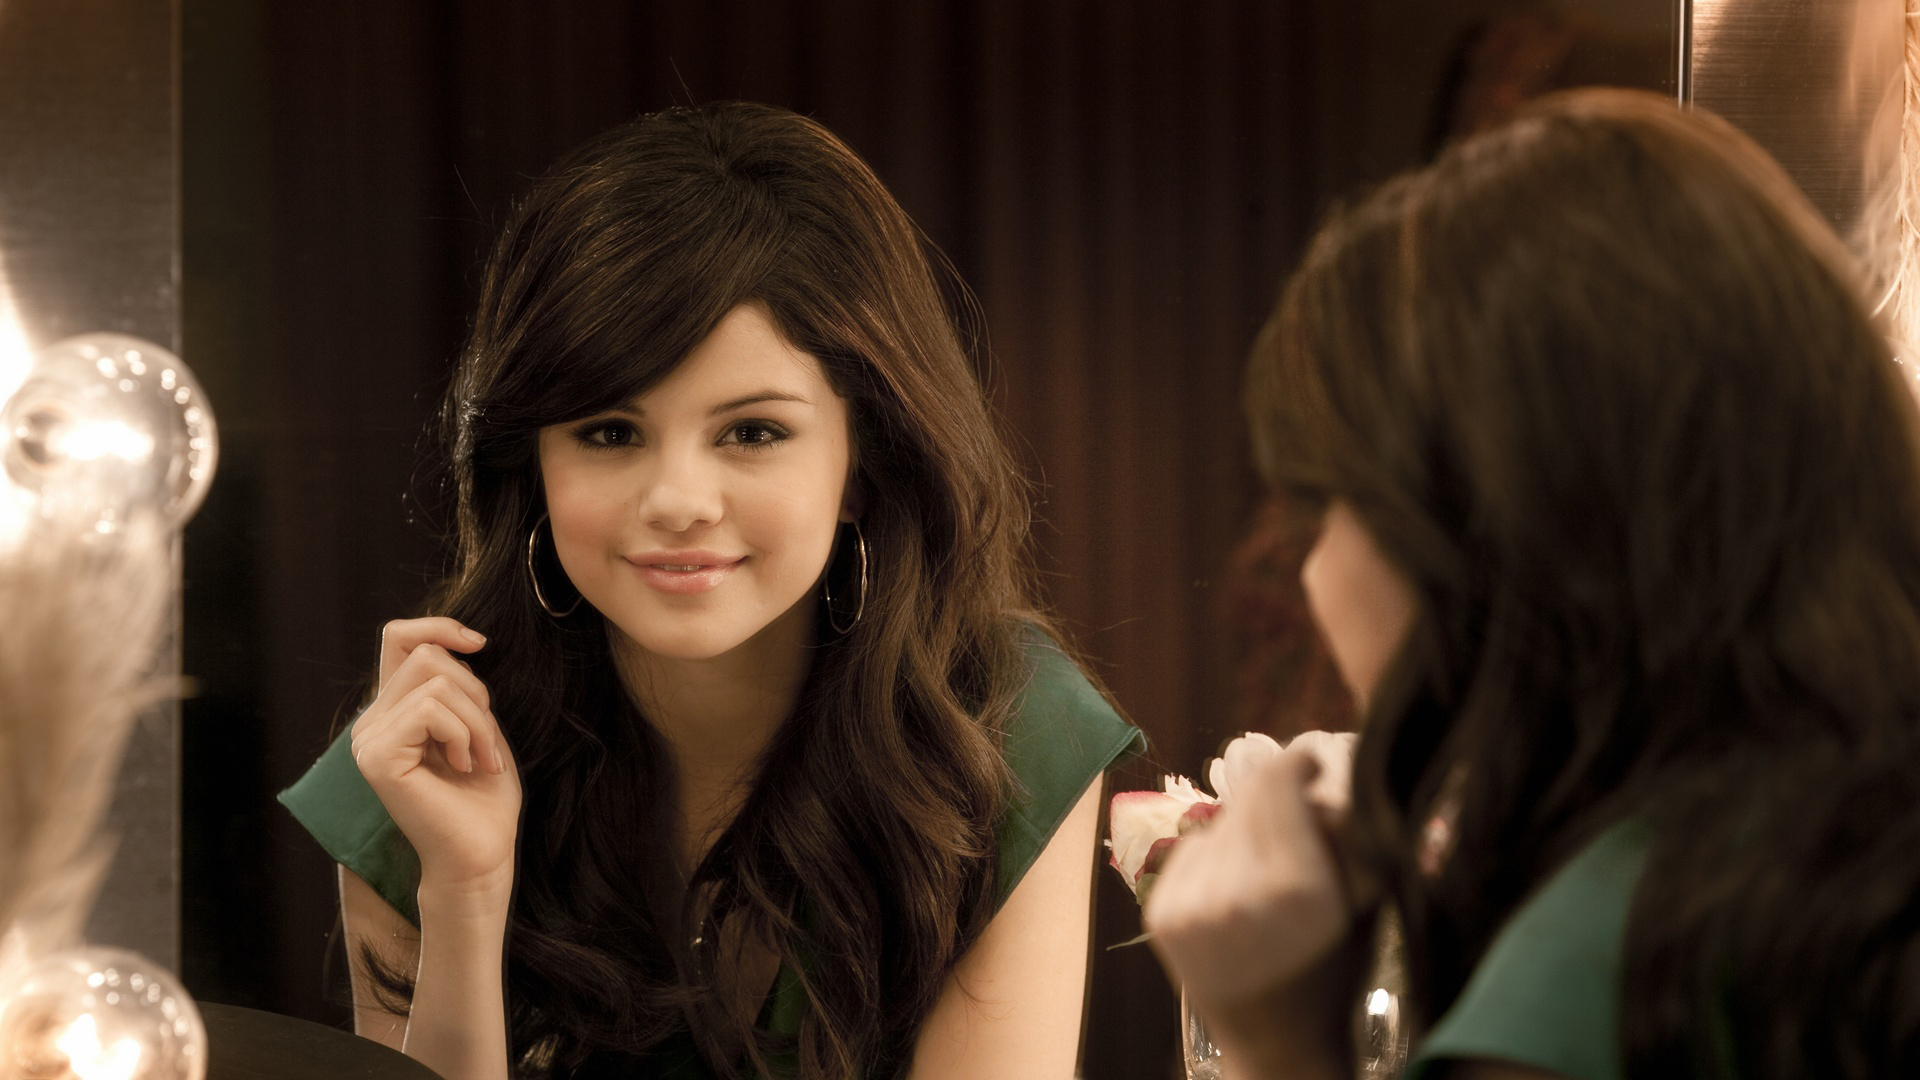 selena gomez hd wallpaper, images, photos | free 55 hd quality